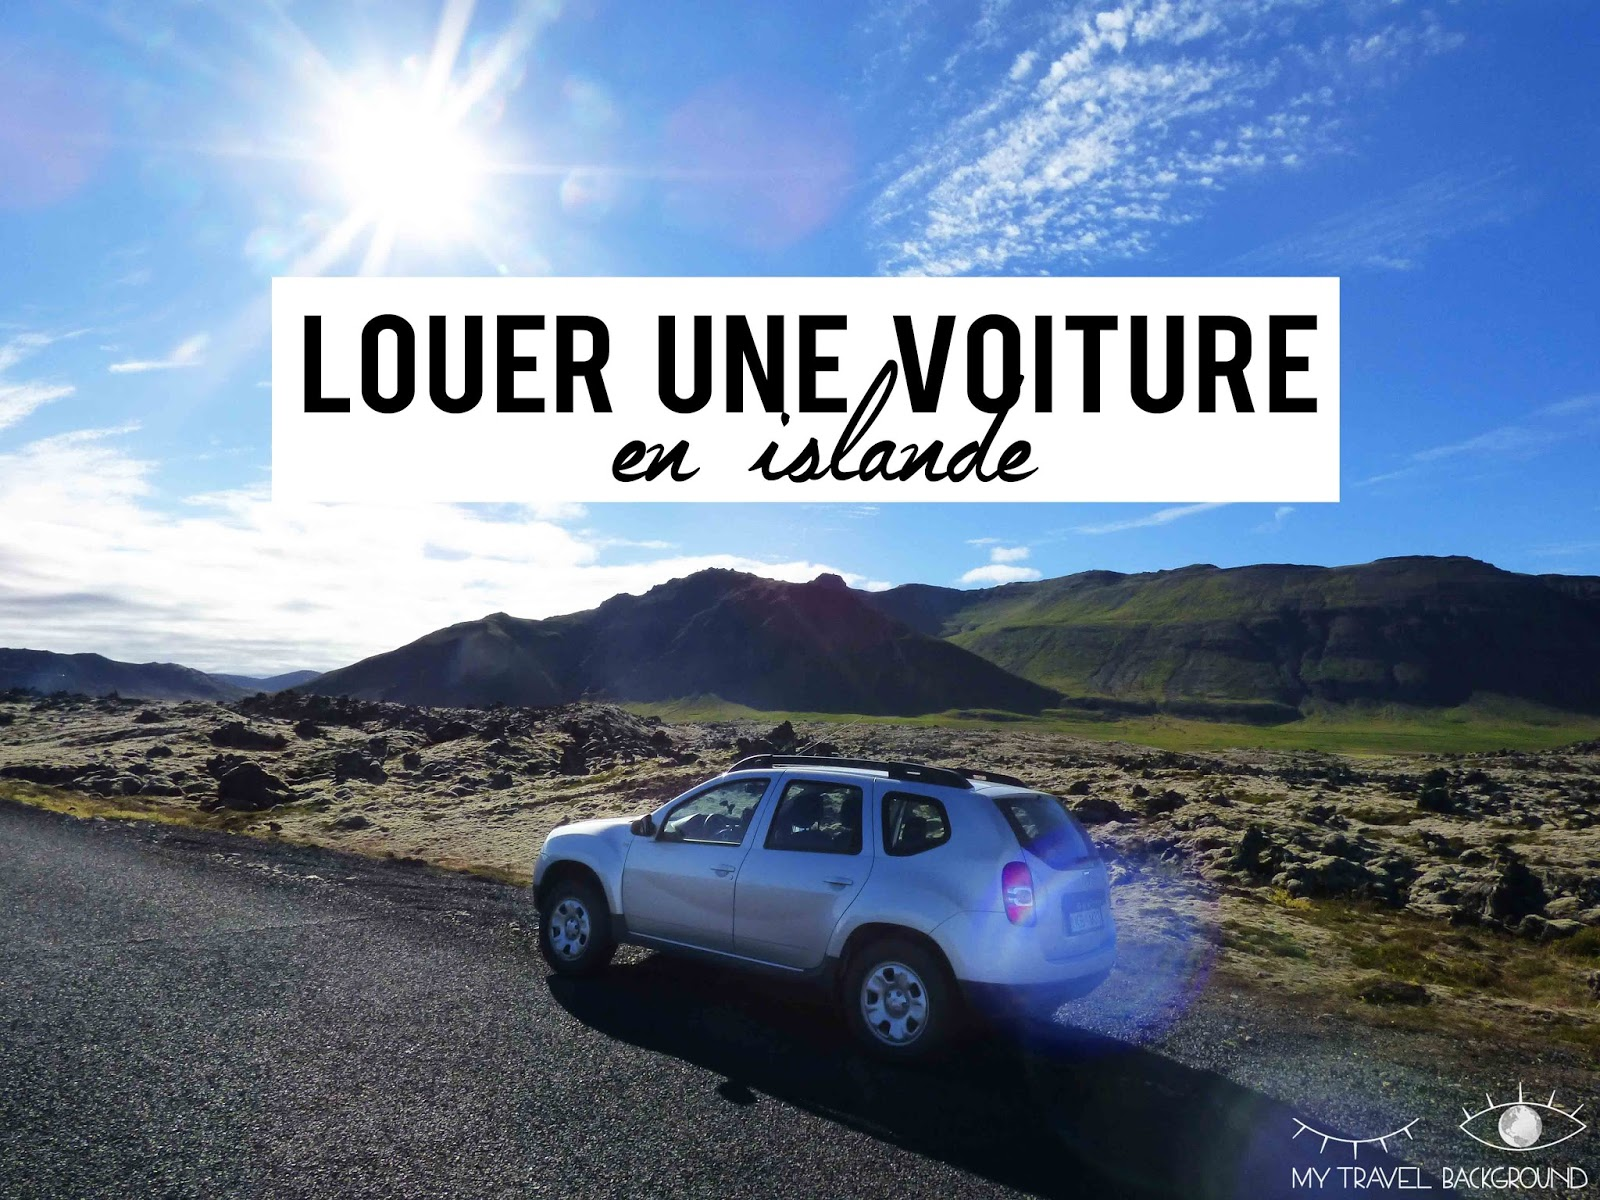 mes conseils pour louer une voiture en islande en t my travel background blog voyage. Black Bedroom Furniture Sets. Home Design Ideas